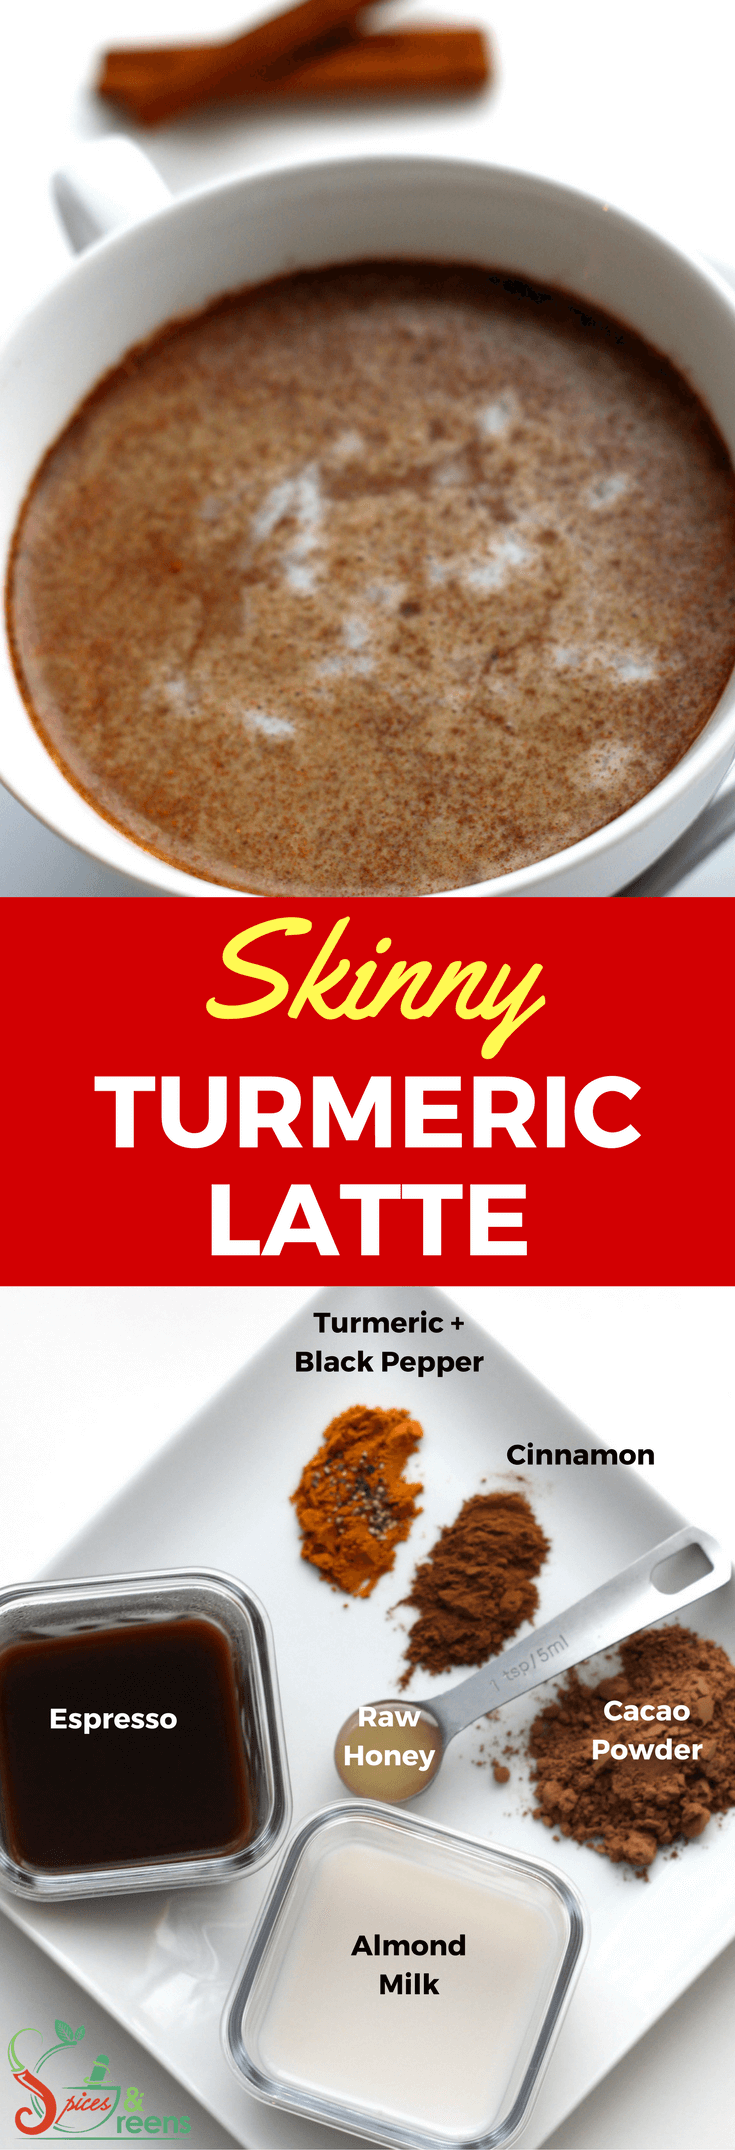 Turmeric Latte Recipe|Turmeric Benefits|Turmeric for Weight Loss|Cinnamon Benefits